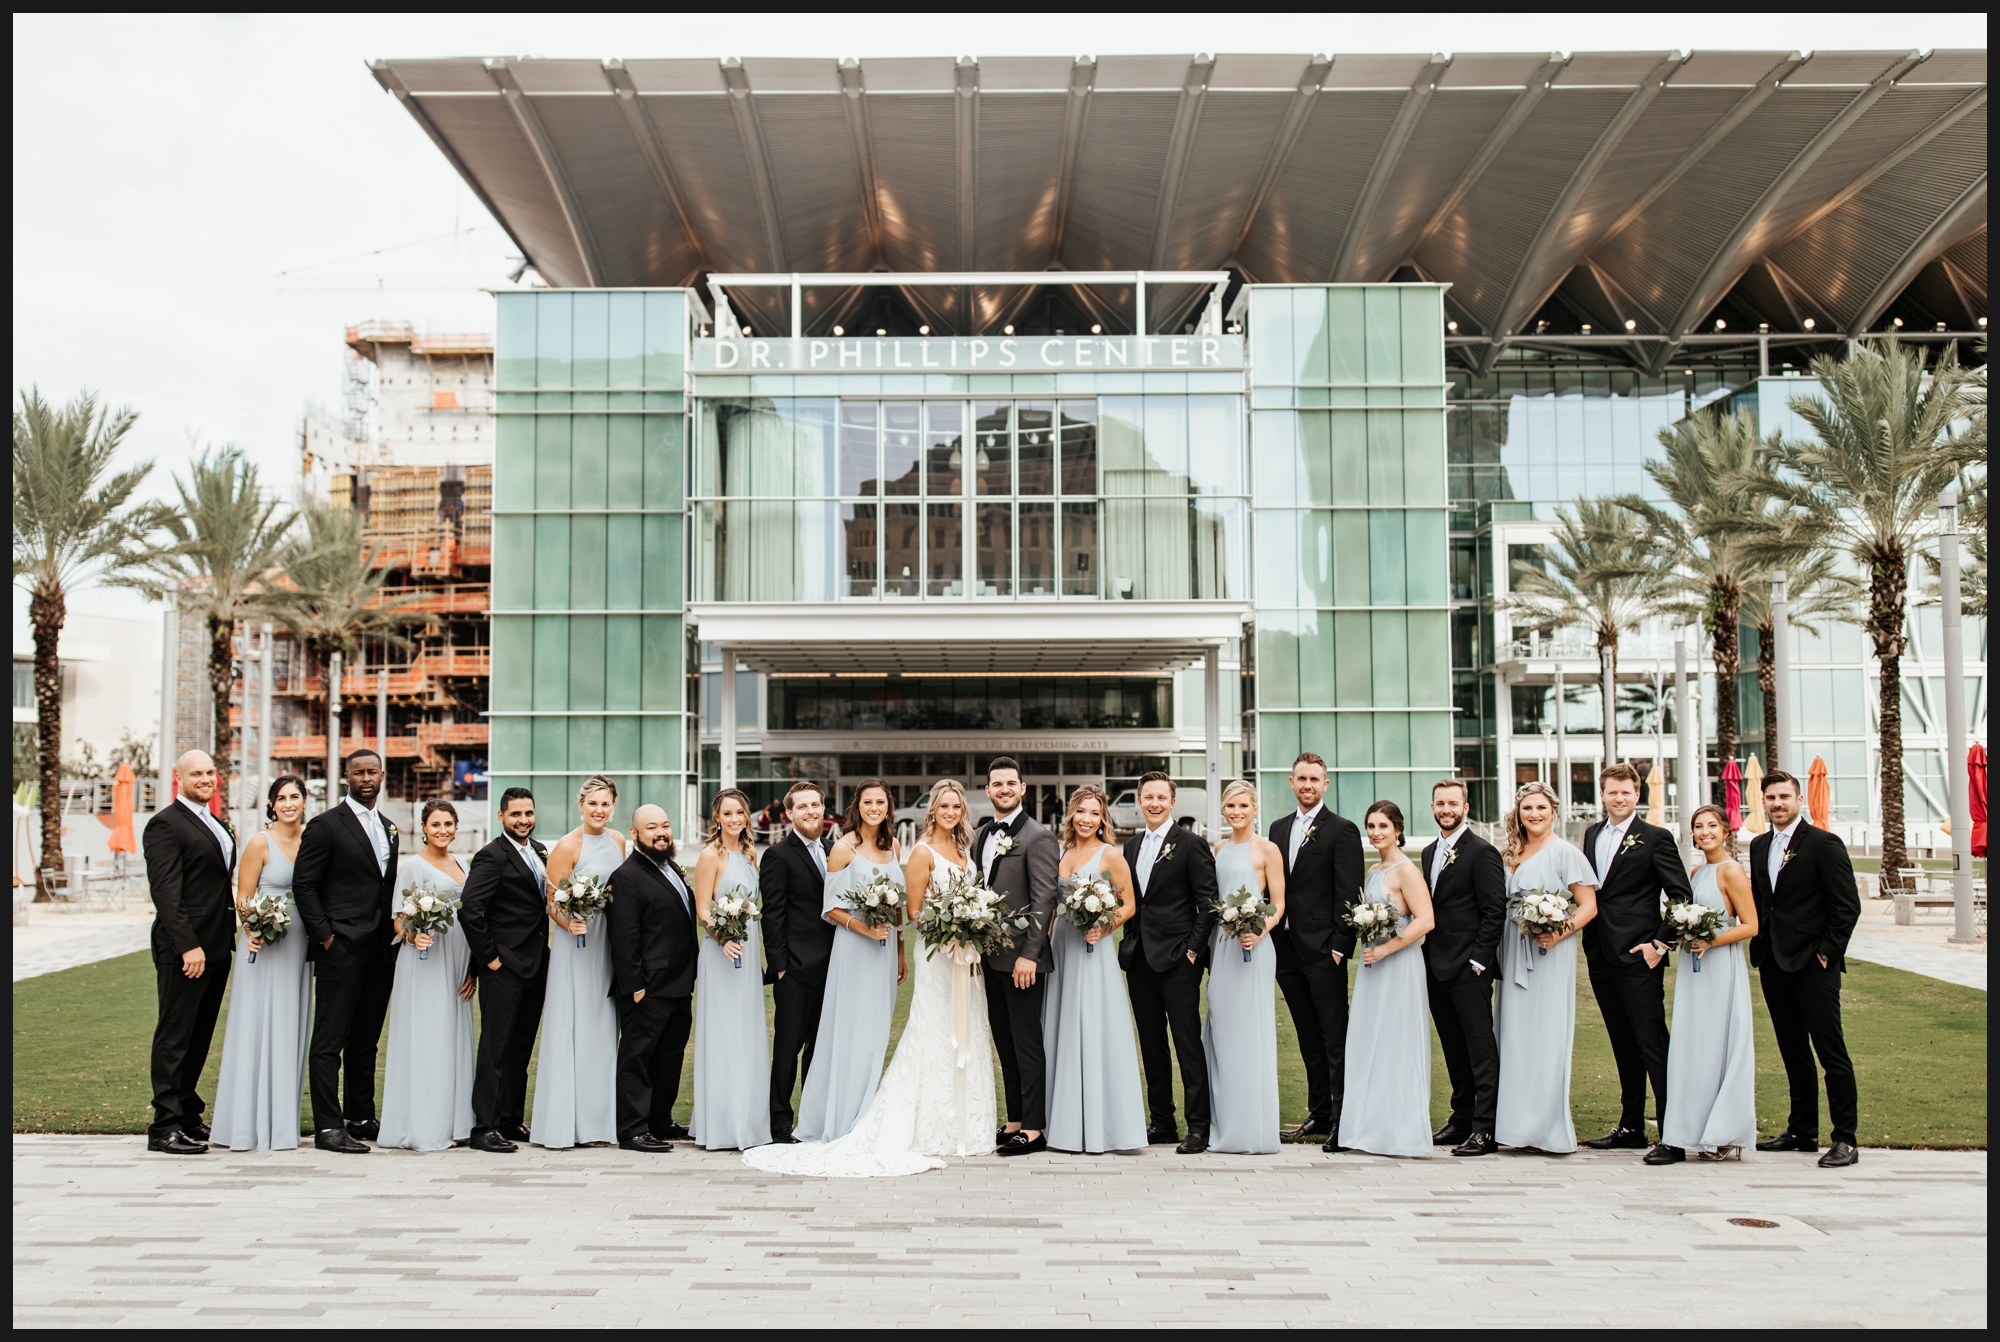 Orlando-Wedding-Photographer-destination-wedding-photographer-florida-wedding-photographer-hawaii-wedding-photographer_0408.jpg